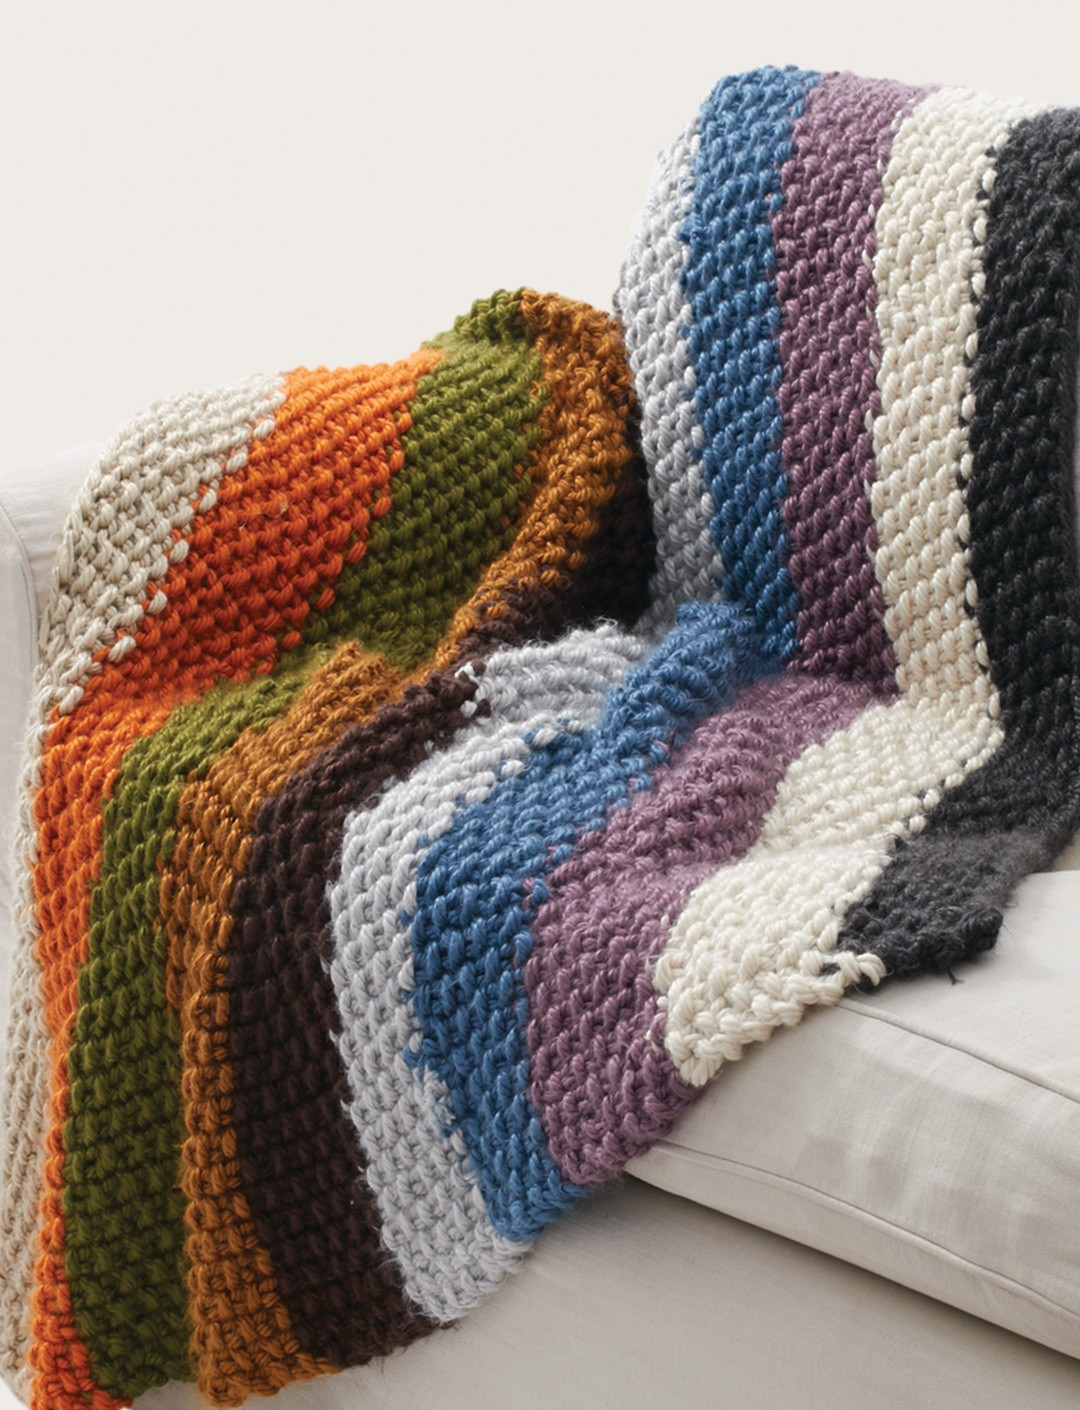 Easy Knitting Blanket Patterns : Bernat Seed Stitch Blanket, Knit Pattern Yarnspirations